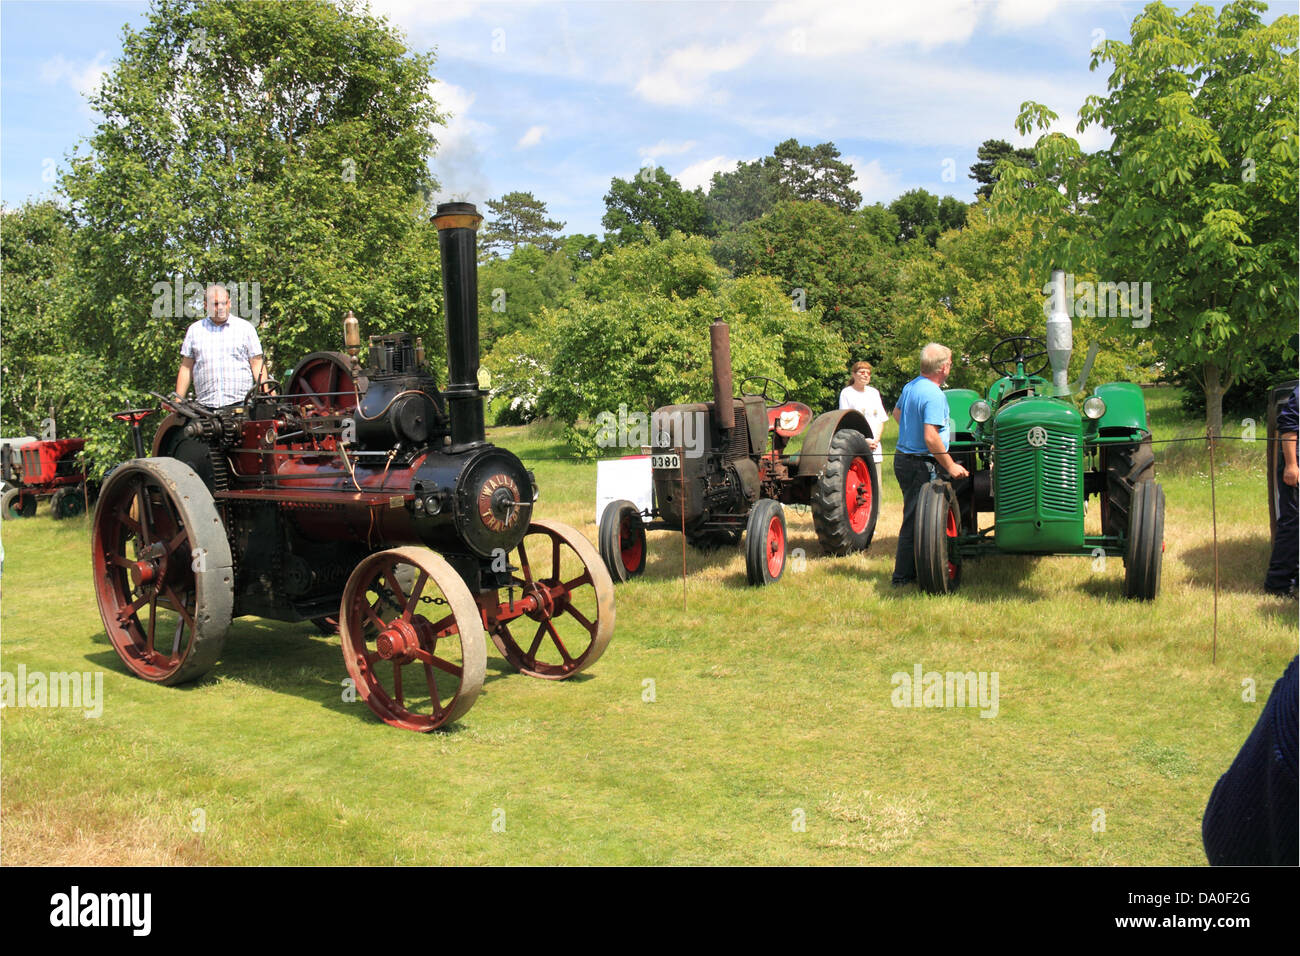 Wallis steam tractor, vintage tractor display and parade, Royal Horticultural Society Garden Party Weekend, 29th - Stock Image